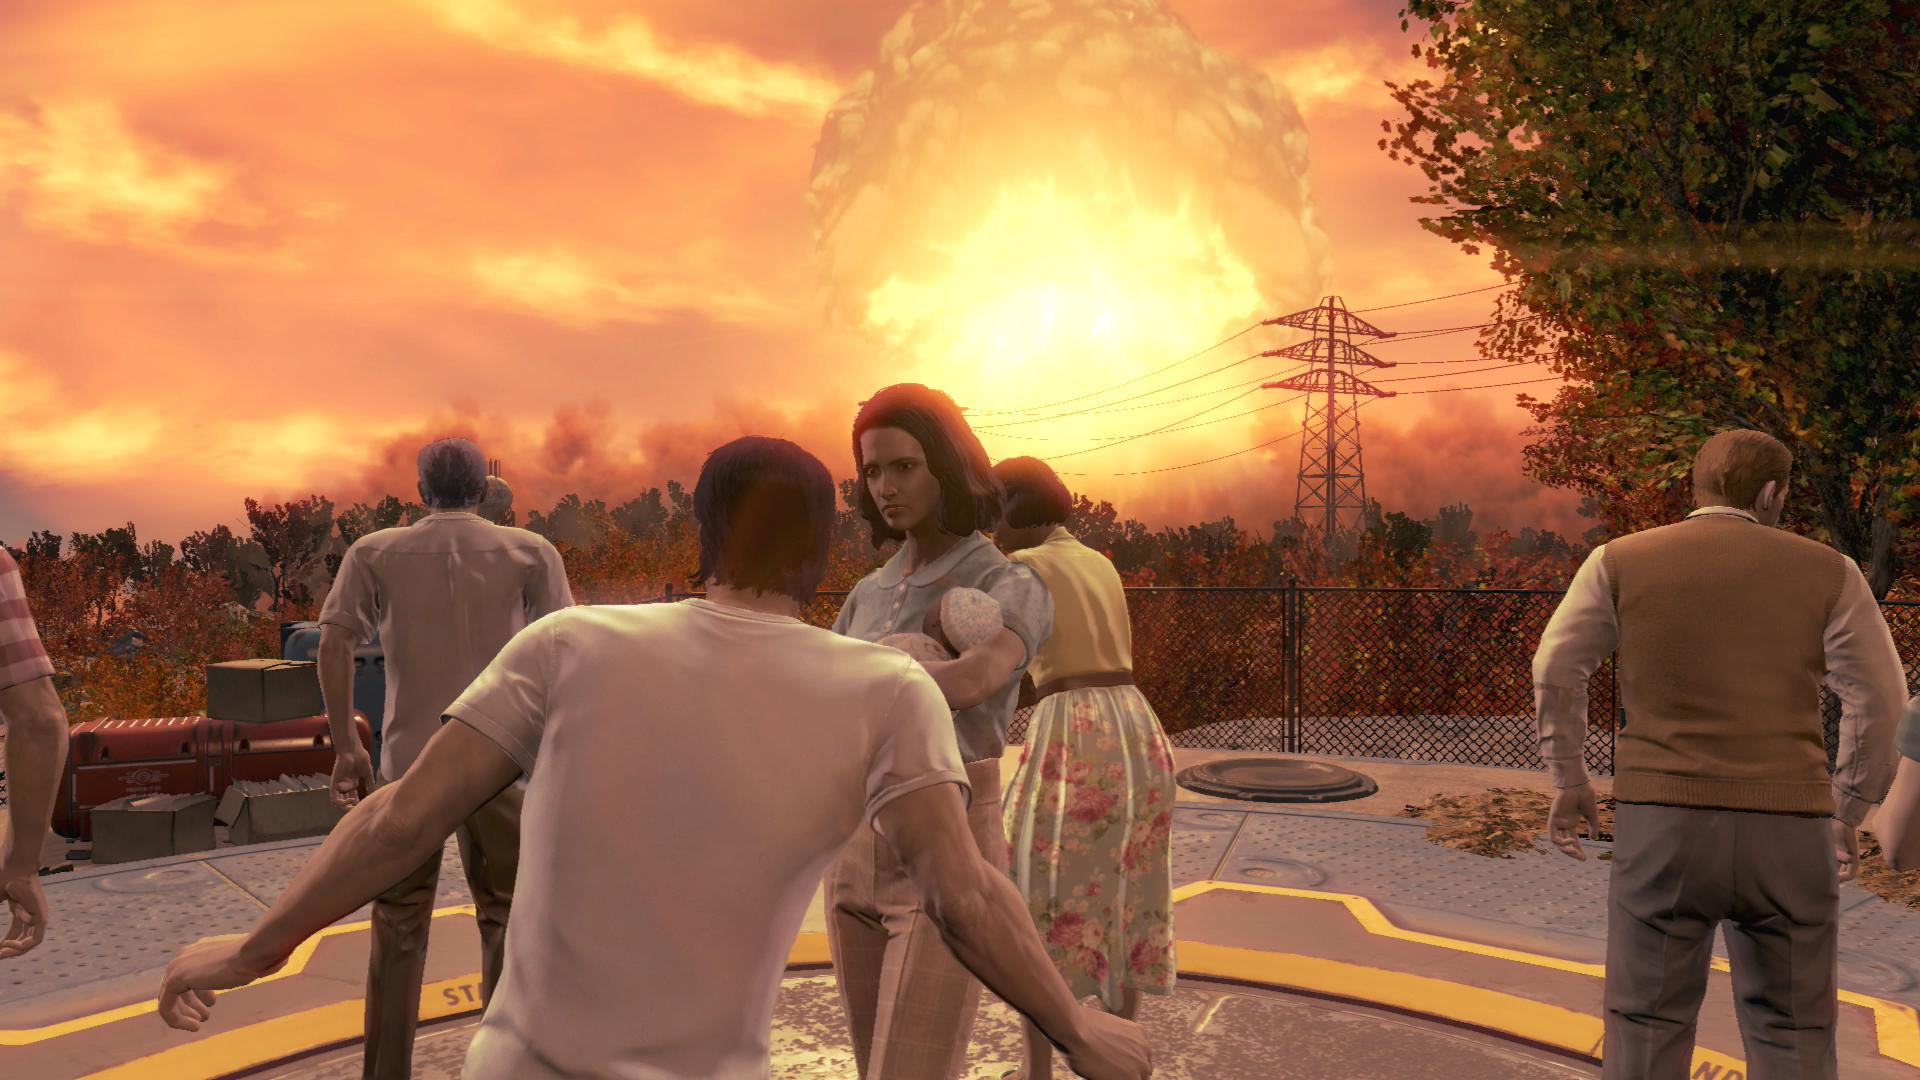 Everything you need to know about the Fallout universe